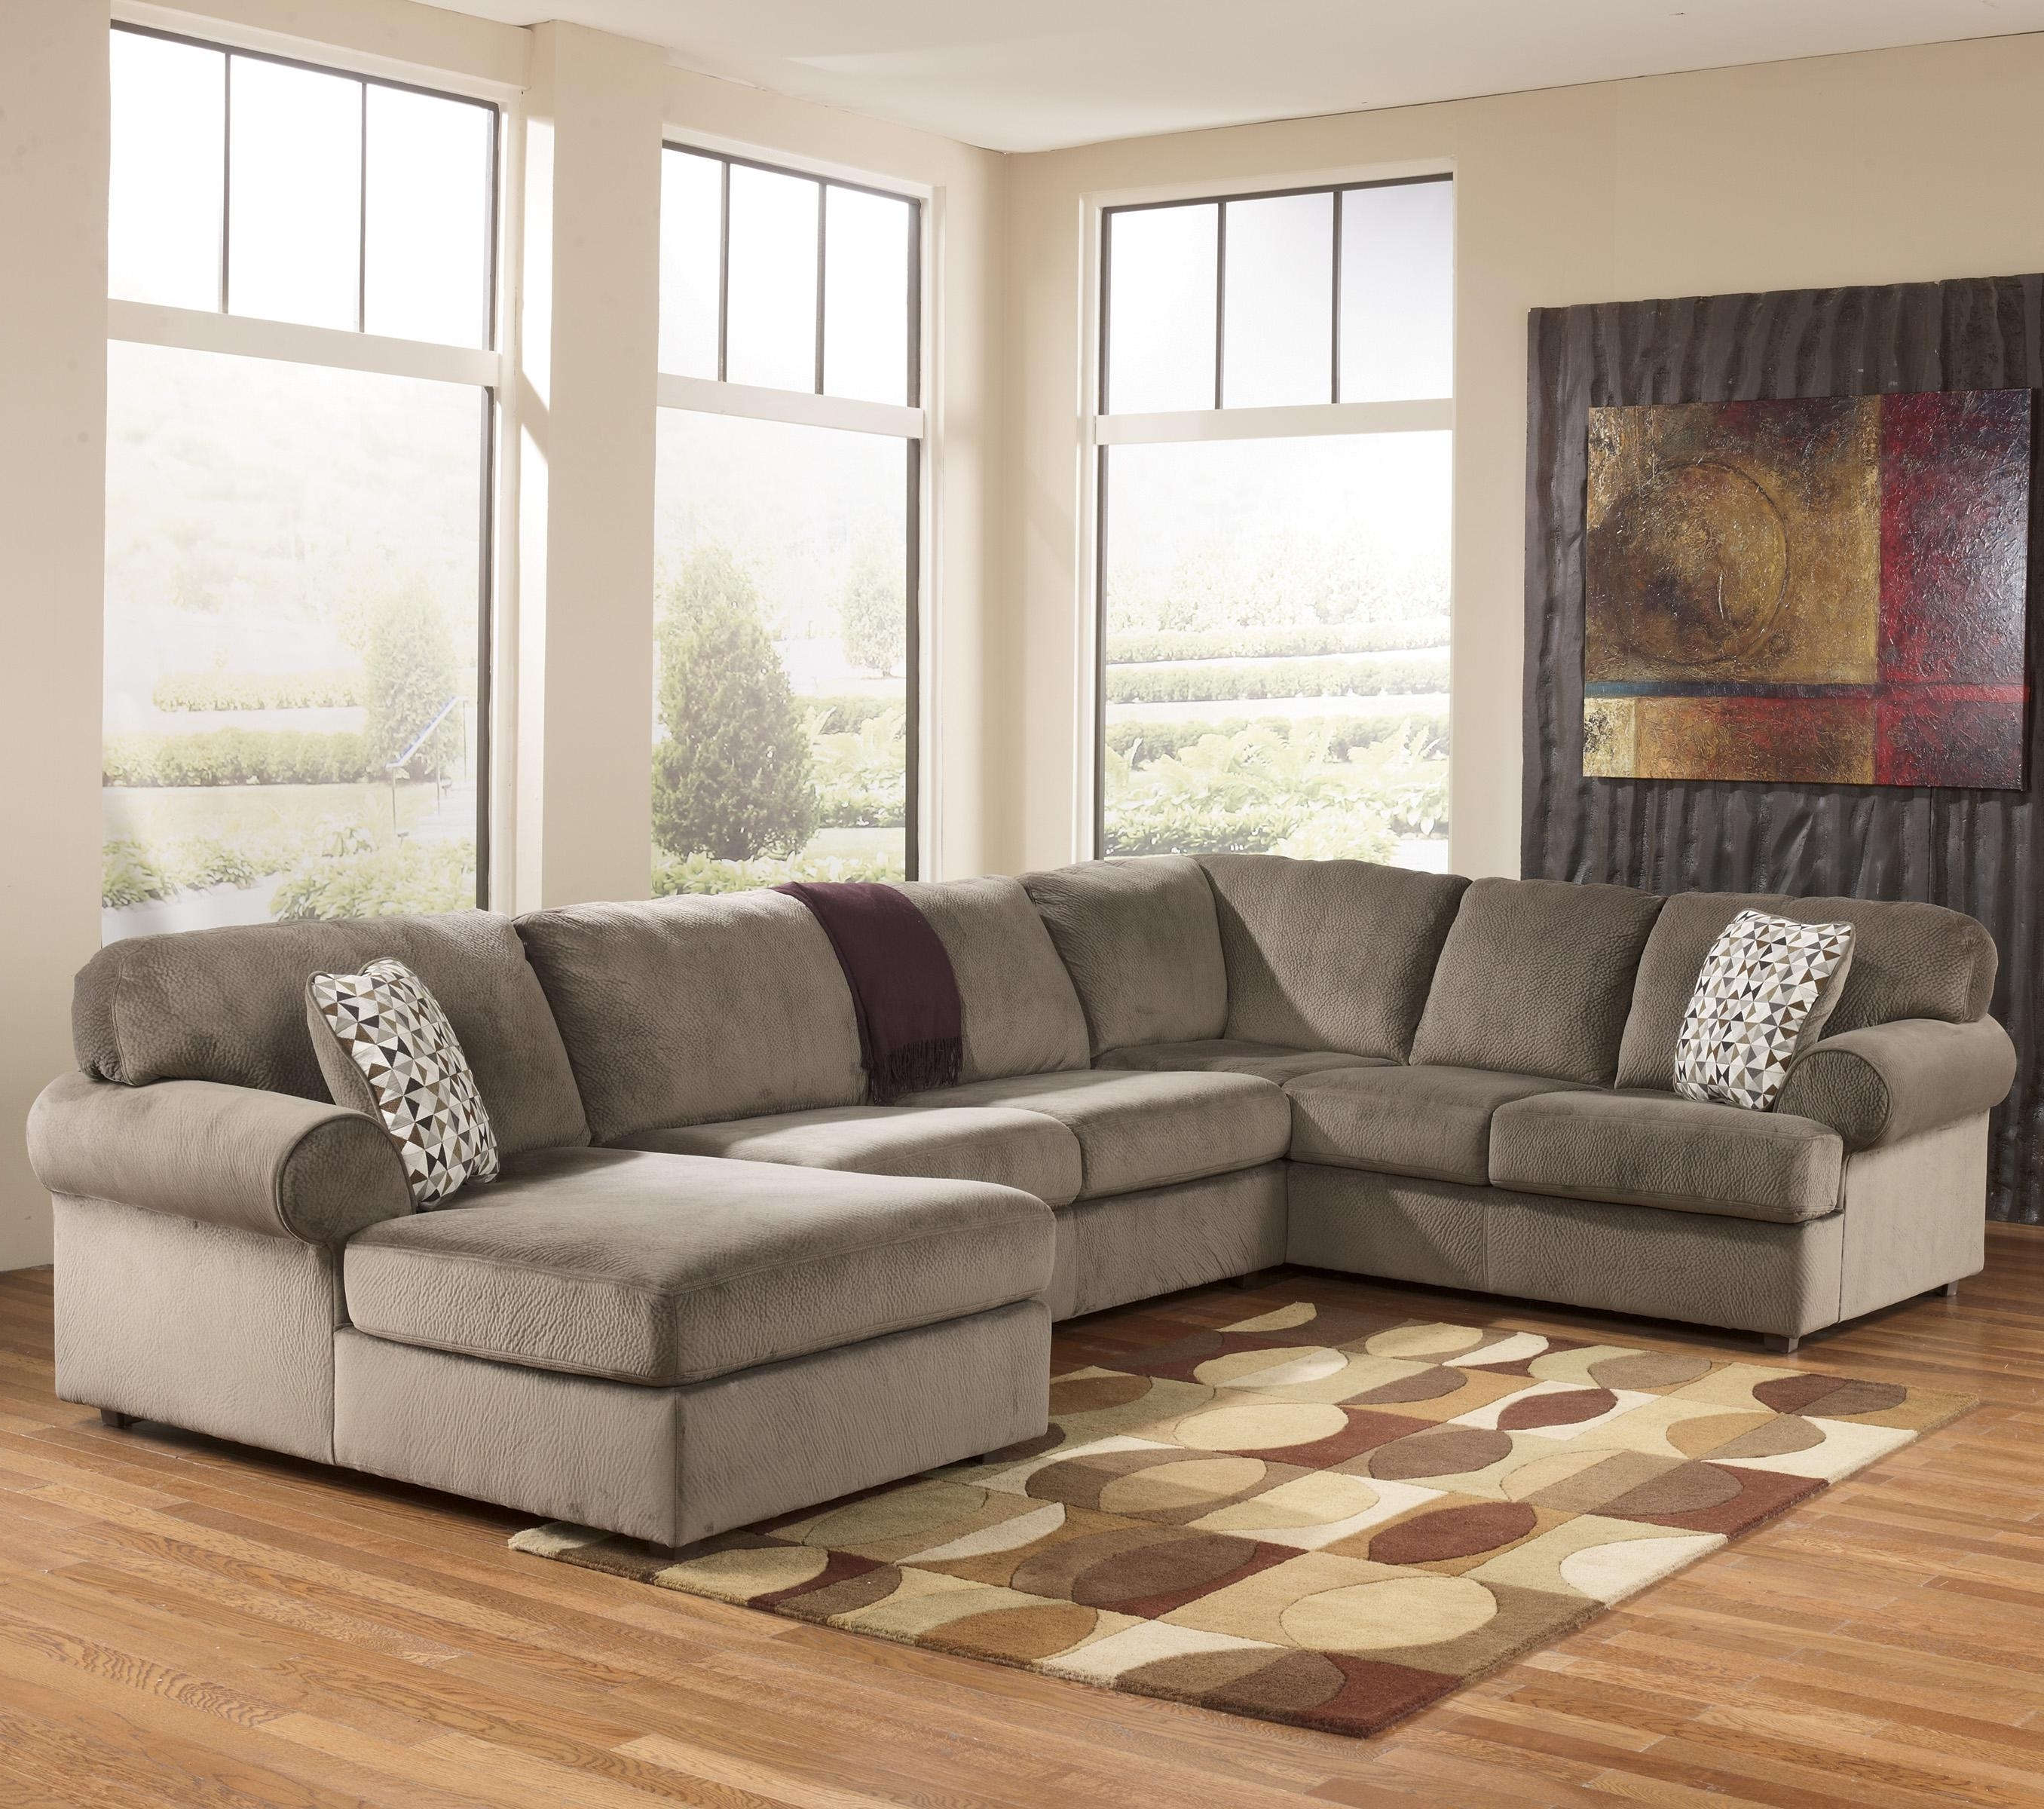 Well Liked Clarksville Tn Sectional Sofas In Signature Designashley Jessa Place – Dune Casual Sectional (Gallery 9 of 15)